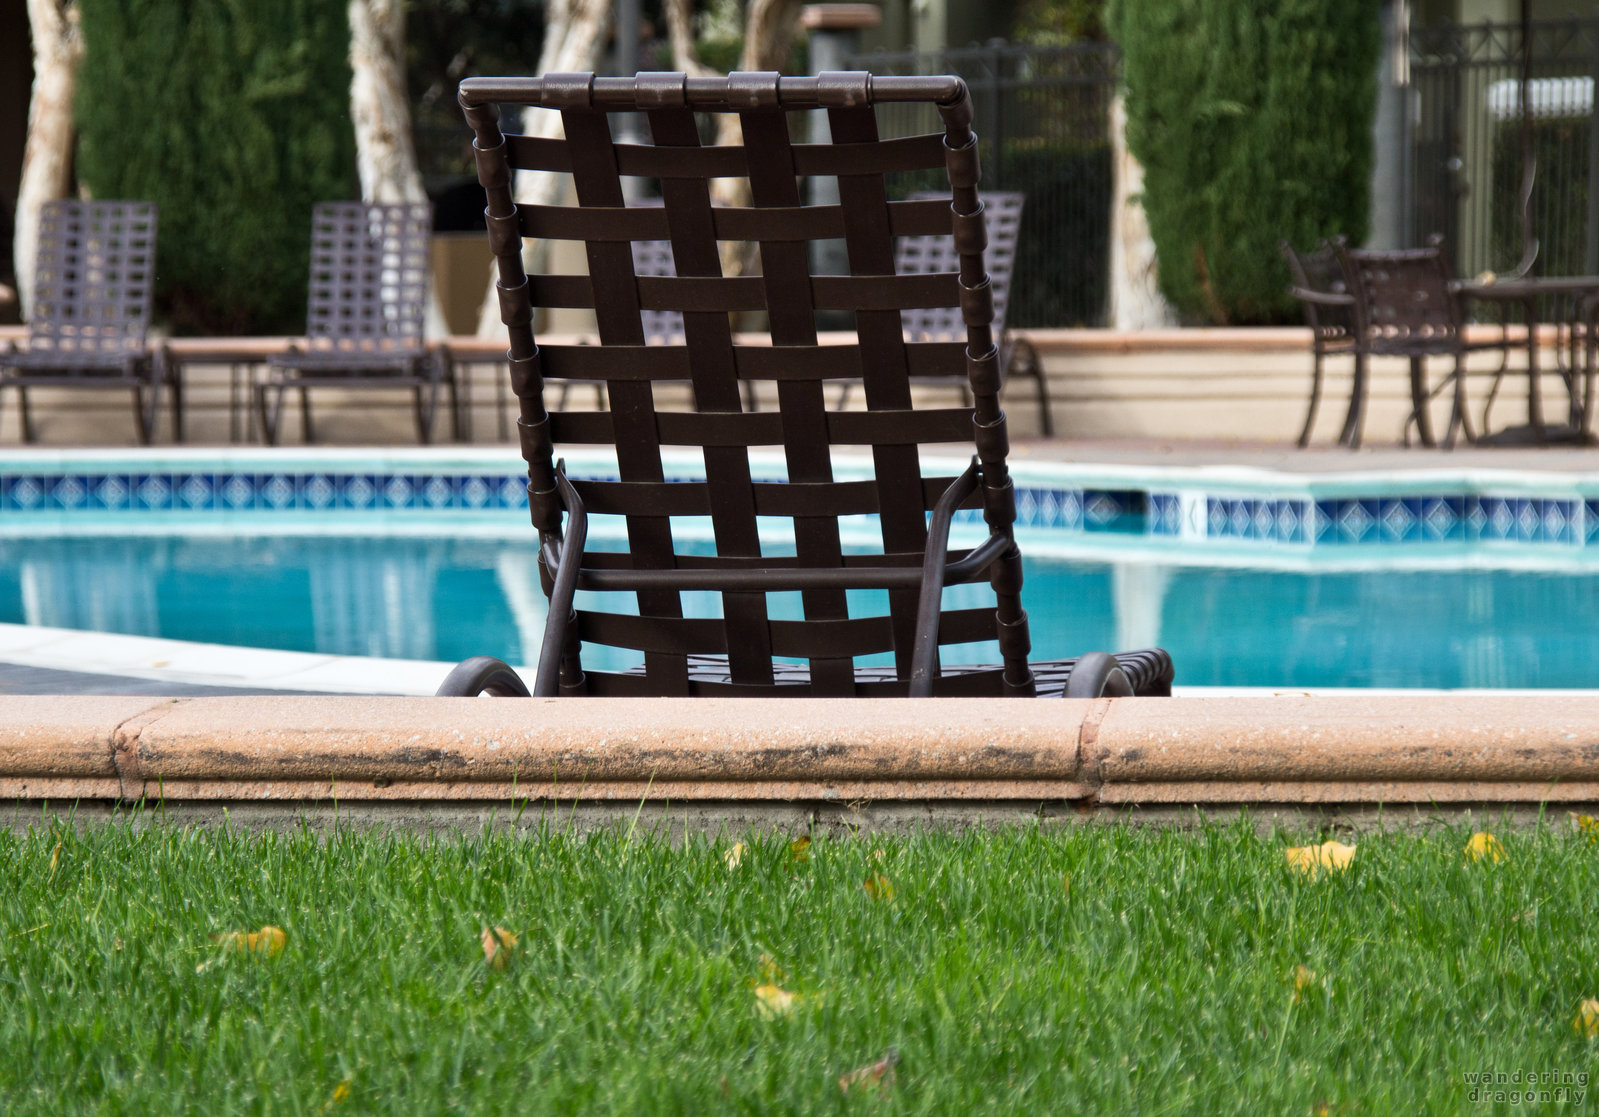 Looking at the pool -- chair, grass, pool